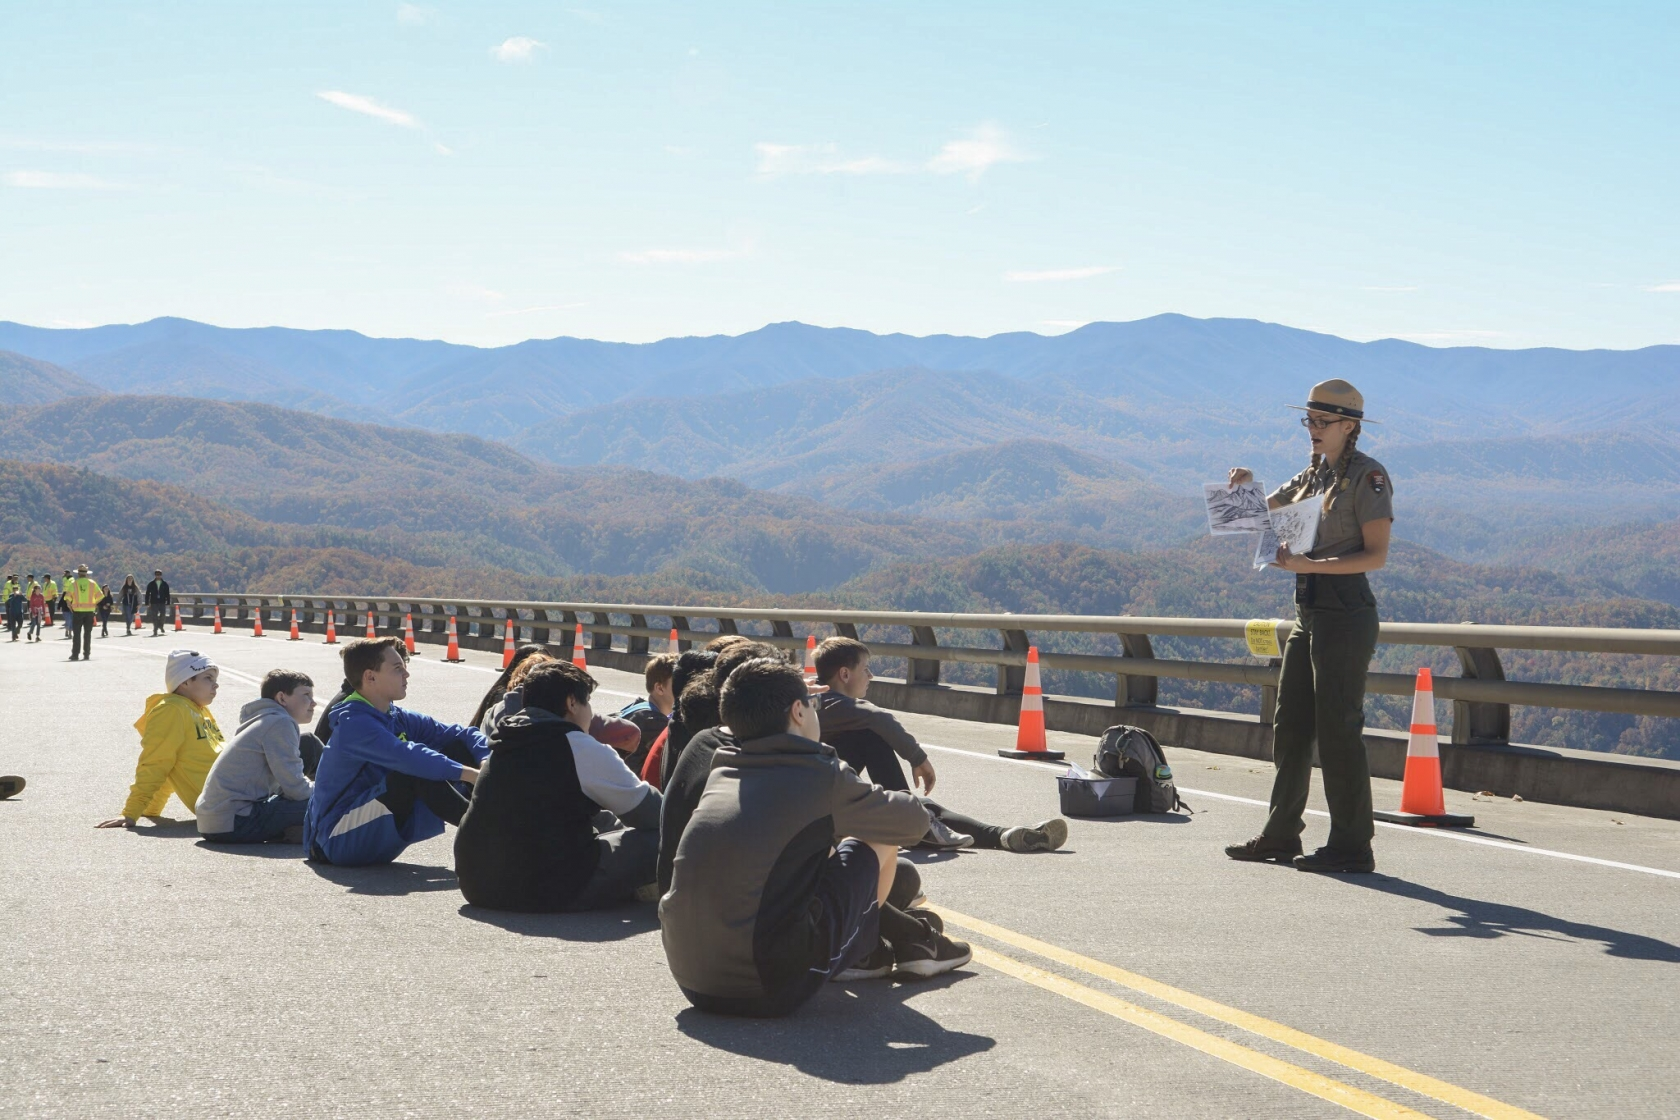 On a paved road, blocked off to traffic, Jessie Snow, in full NPS uniform, holds up a couple of papers to give a demonstration to a group of students sitting on the road in front of her. In the background, a scenic vista of the Great Smokies